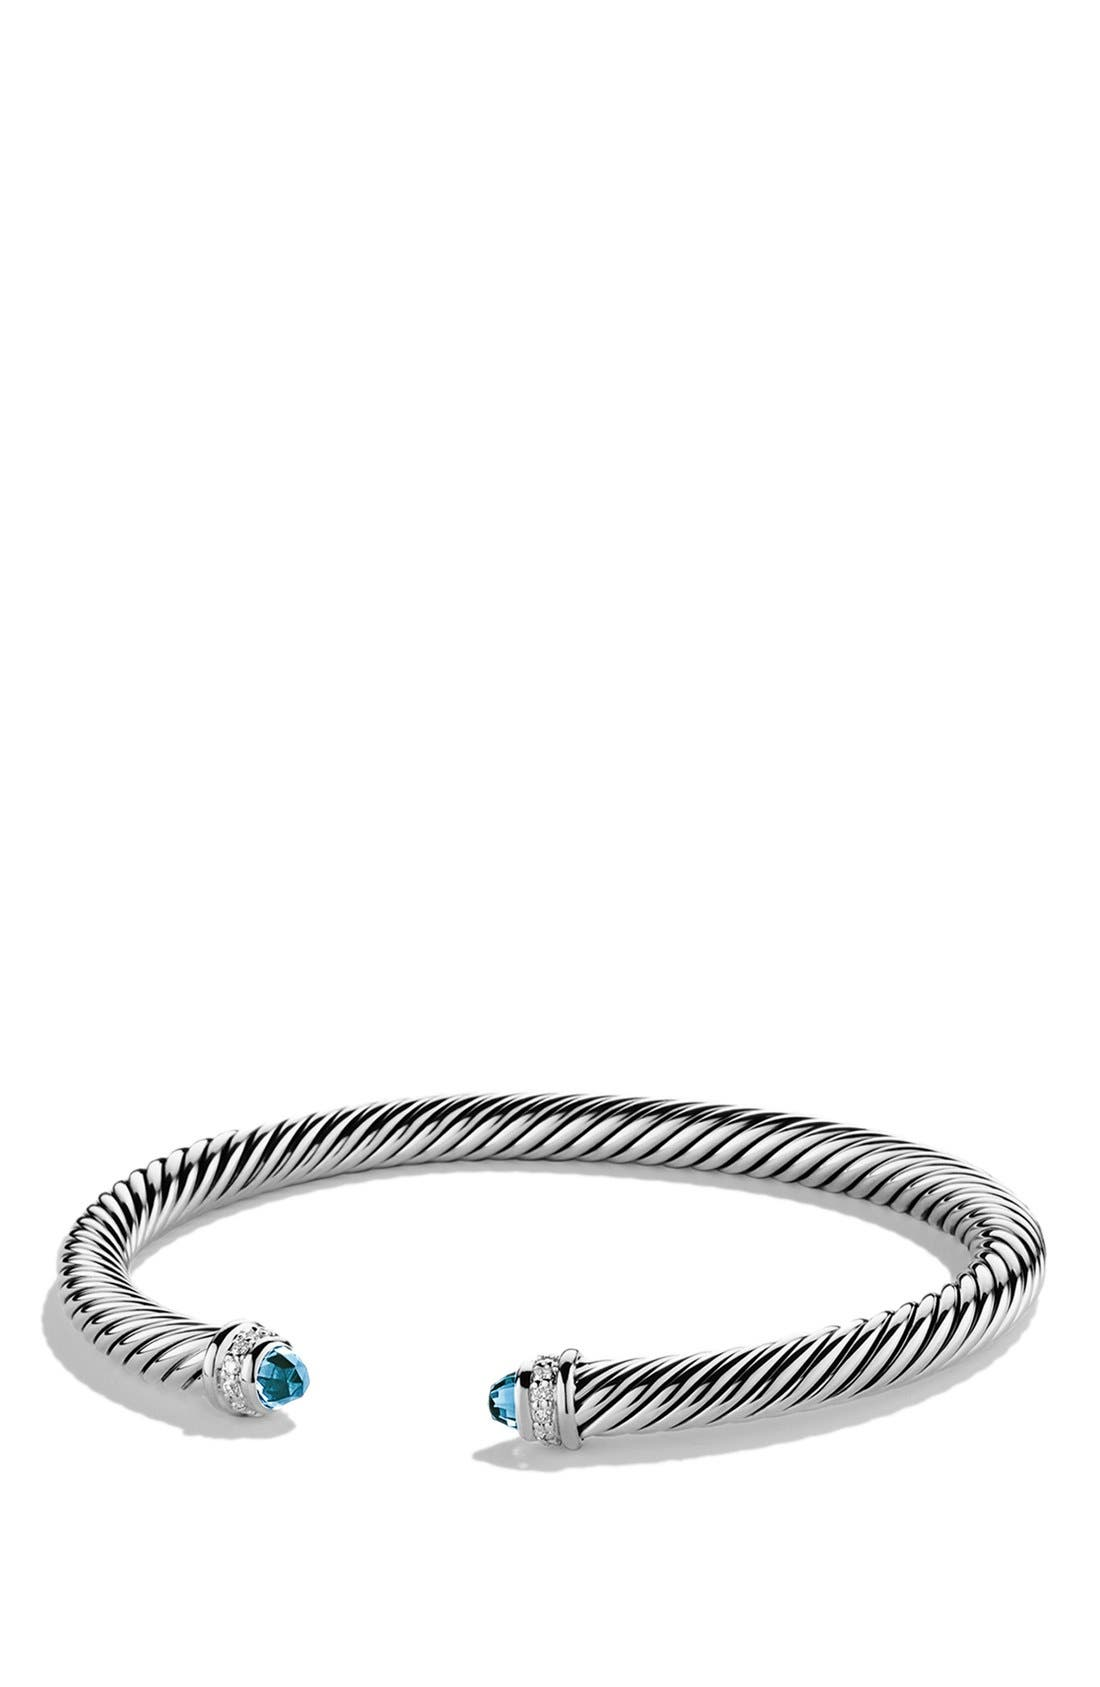 DAVID YURMAN Cable Classics Bracelet with Semiprecious Stones & Diamonds